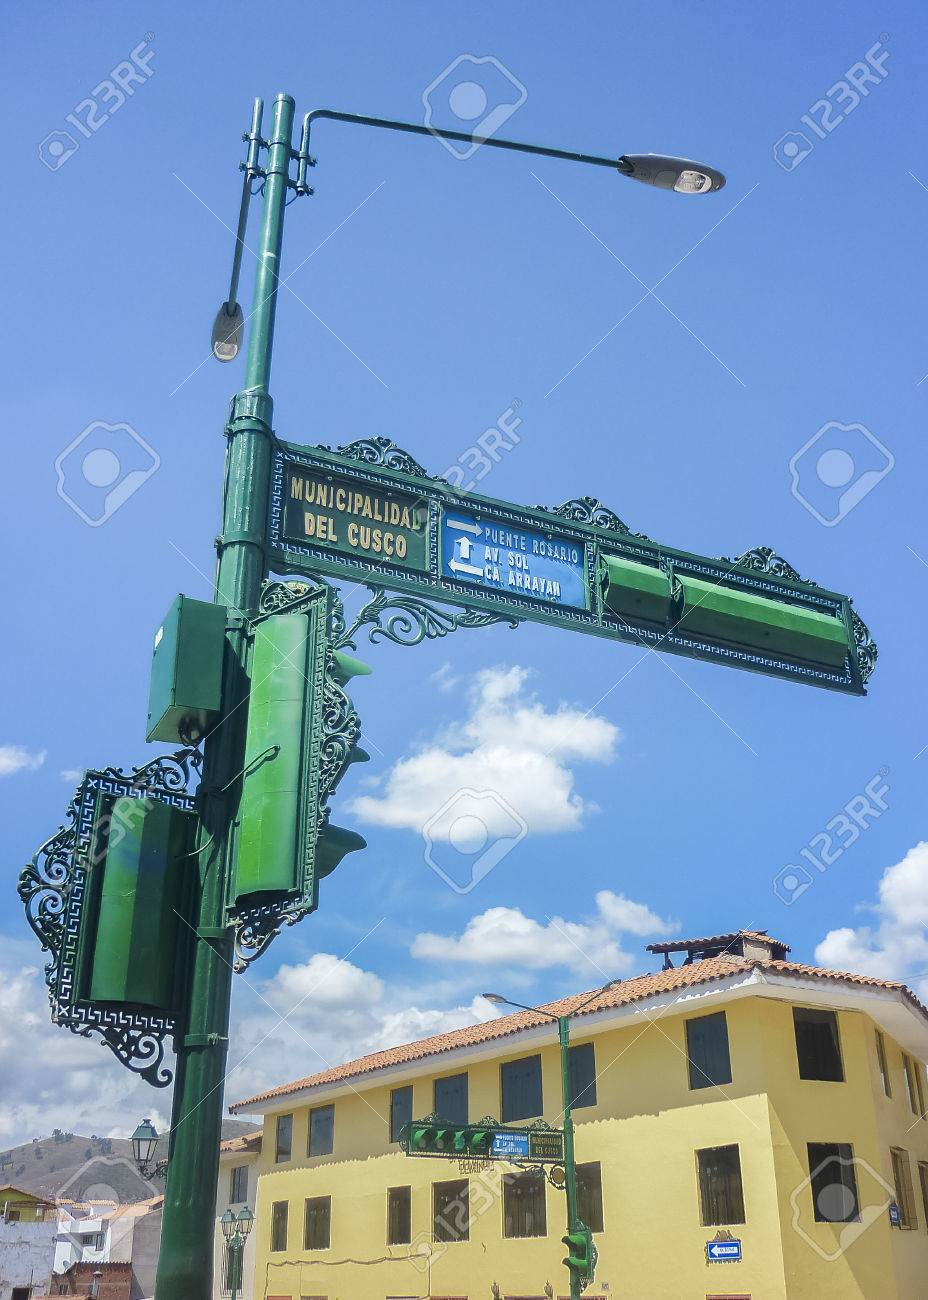 Low angle view ornament elegant old style urban post and traffic